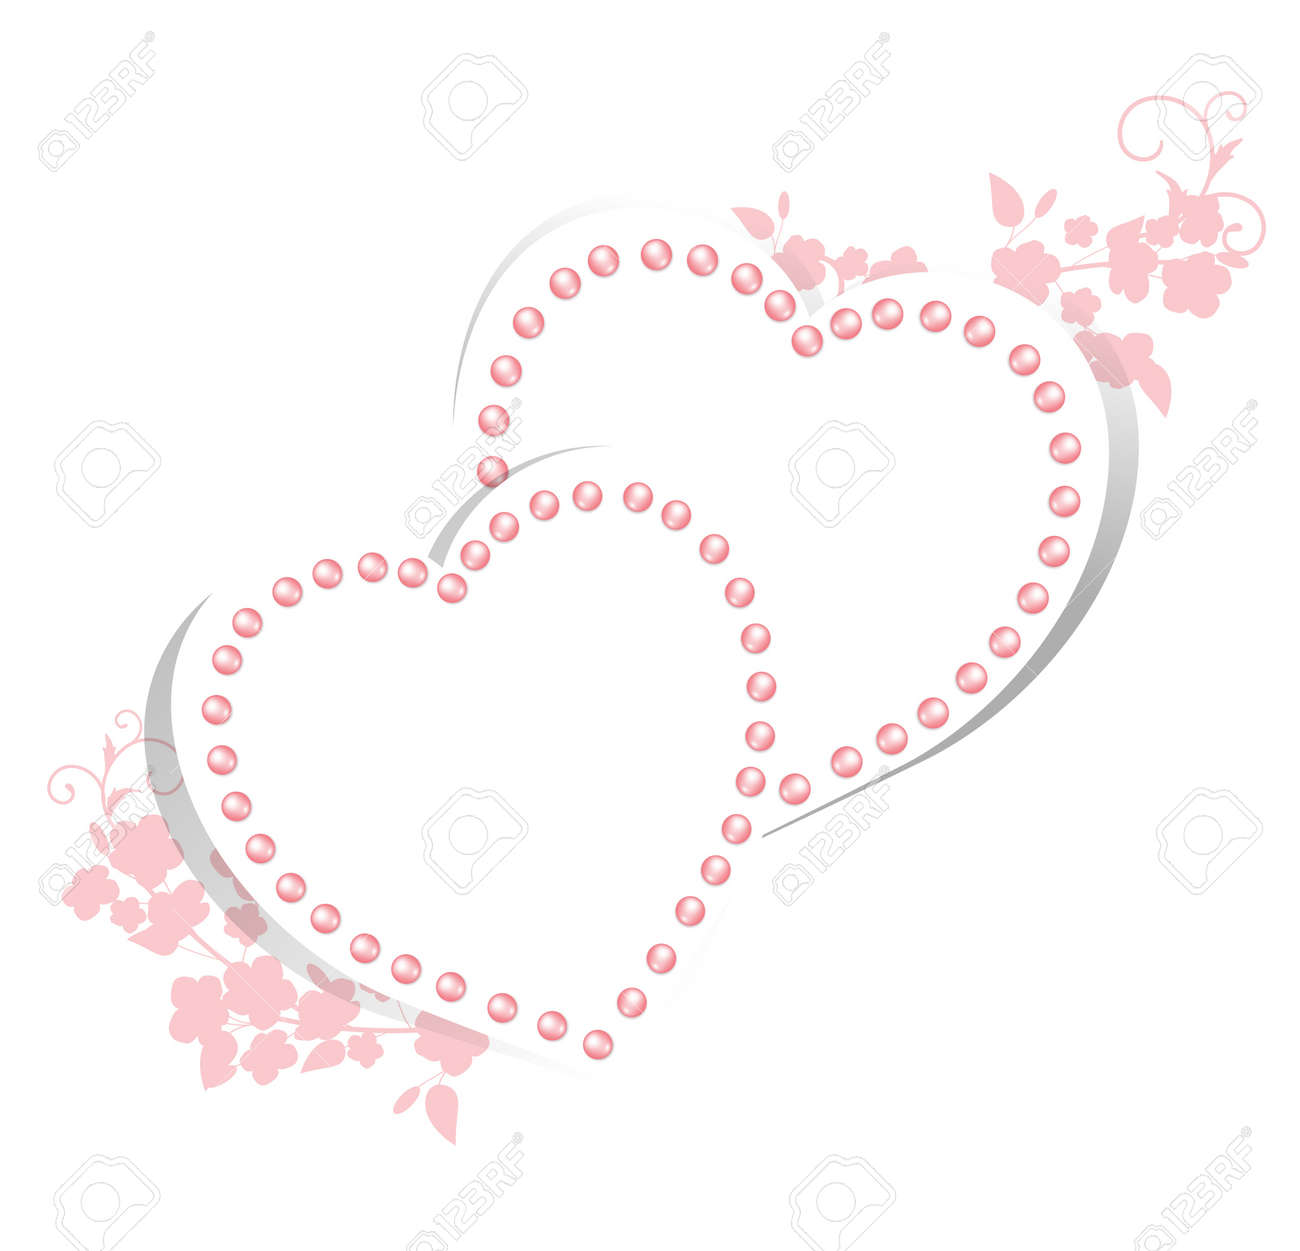 Pearl Hearts With Floral For Wedding Greetings Or Invitation